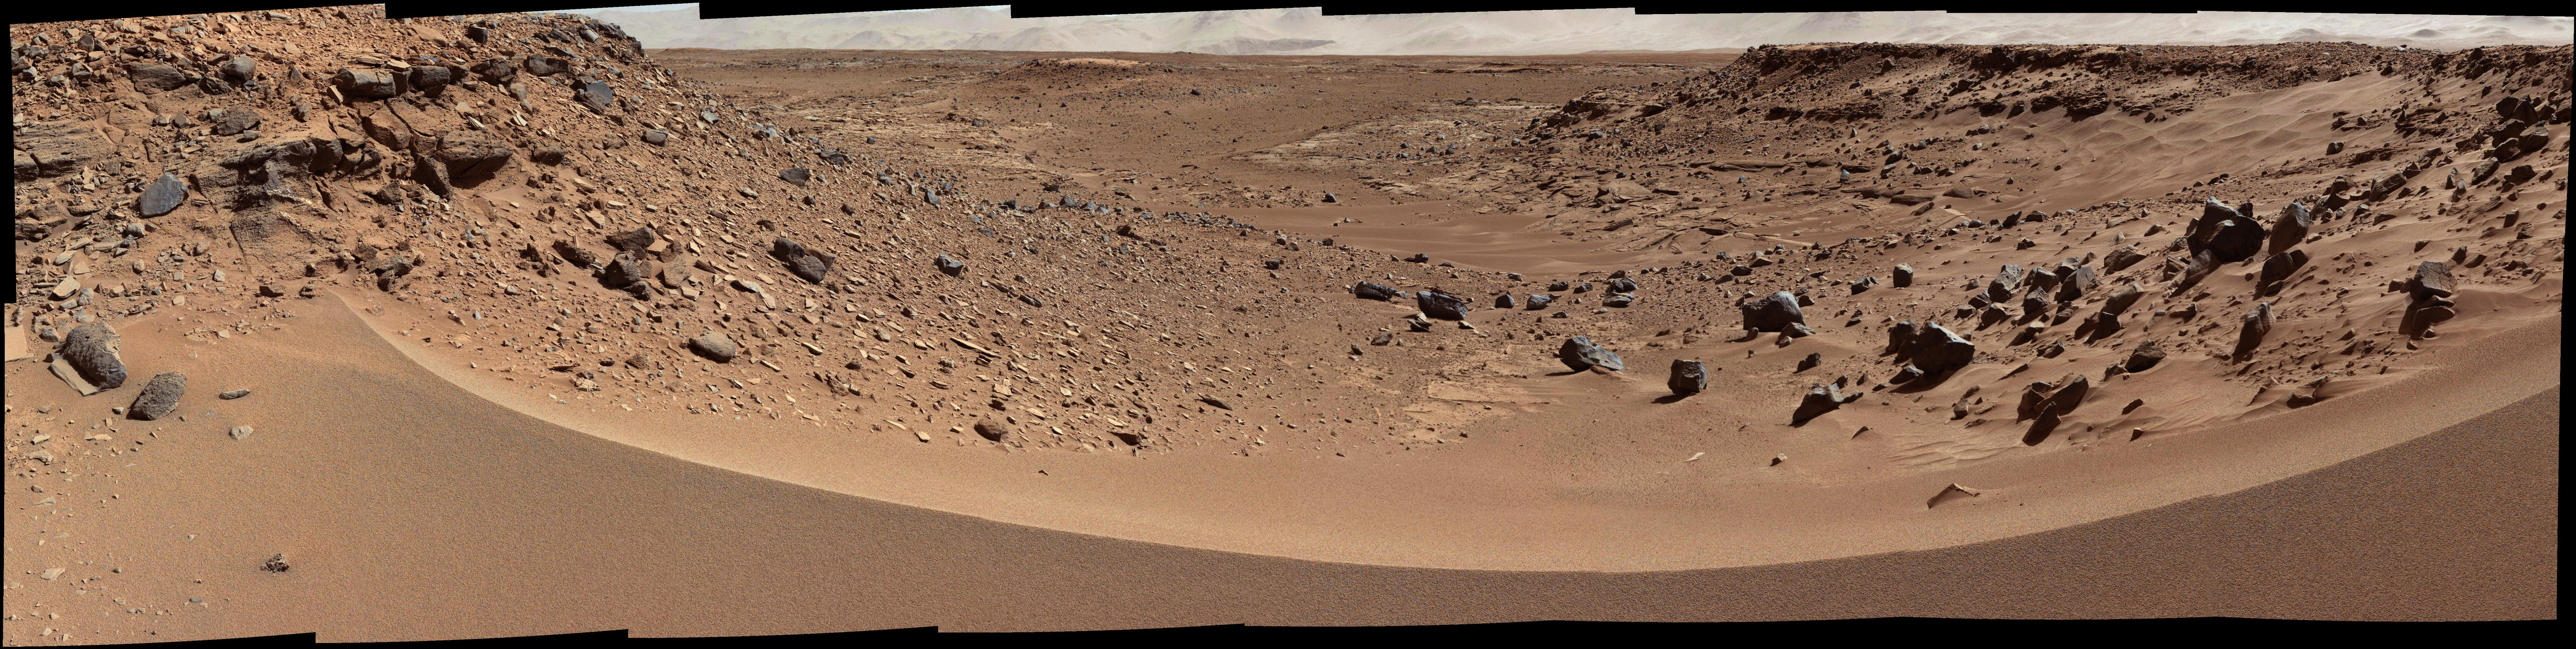 Martian Valley May Be Curiosity's Route (White-Balanced)